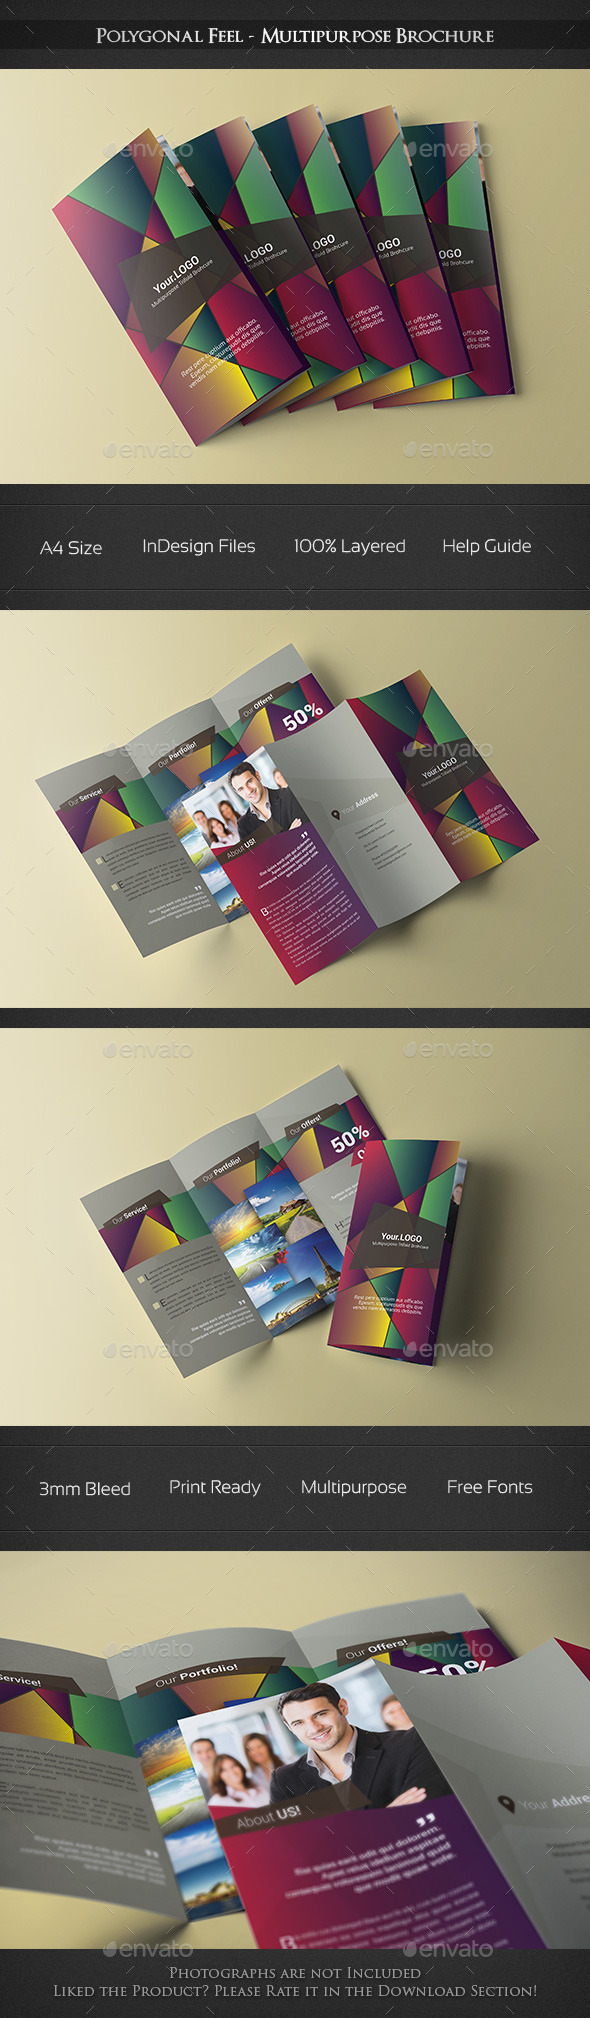 Polygonal Feel - Trifold Brochure - Corporate Brochures